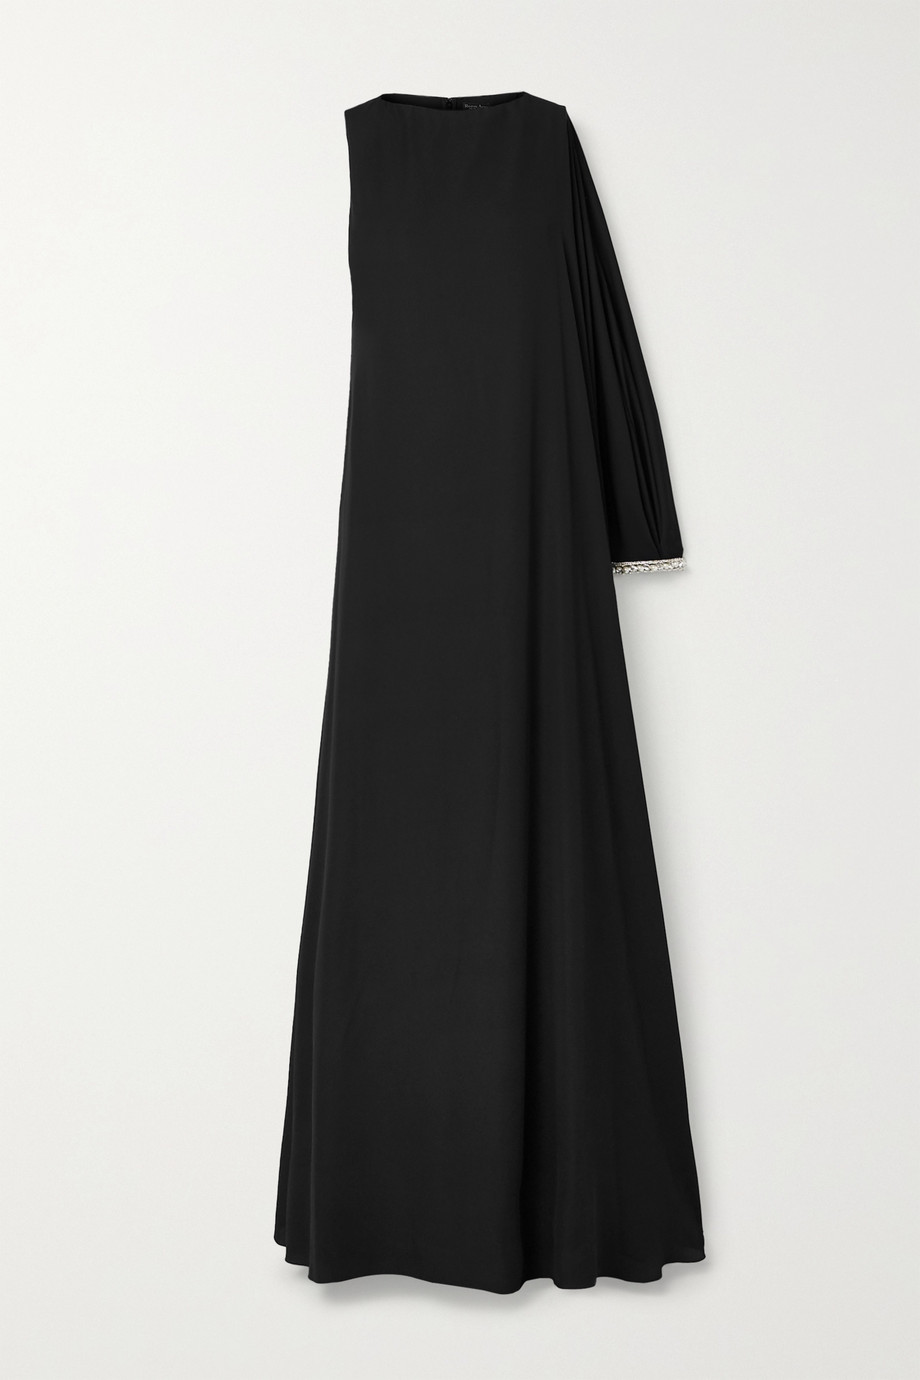 Reem Acra Asymmetric crystal-embellished crepe gown